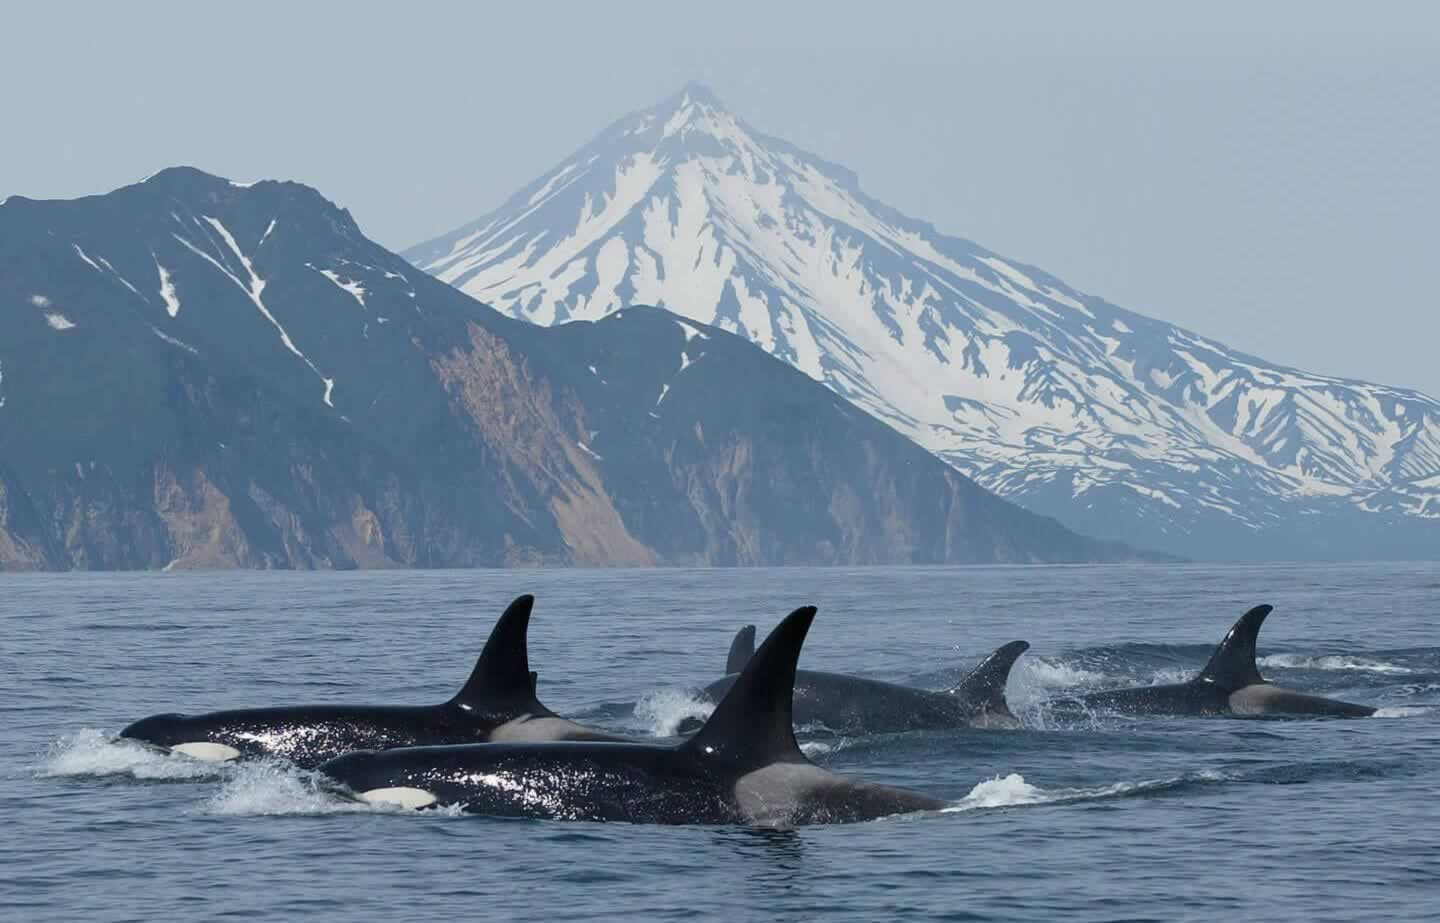 Group of orcas in Kamchatka, Russia